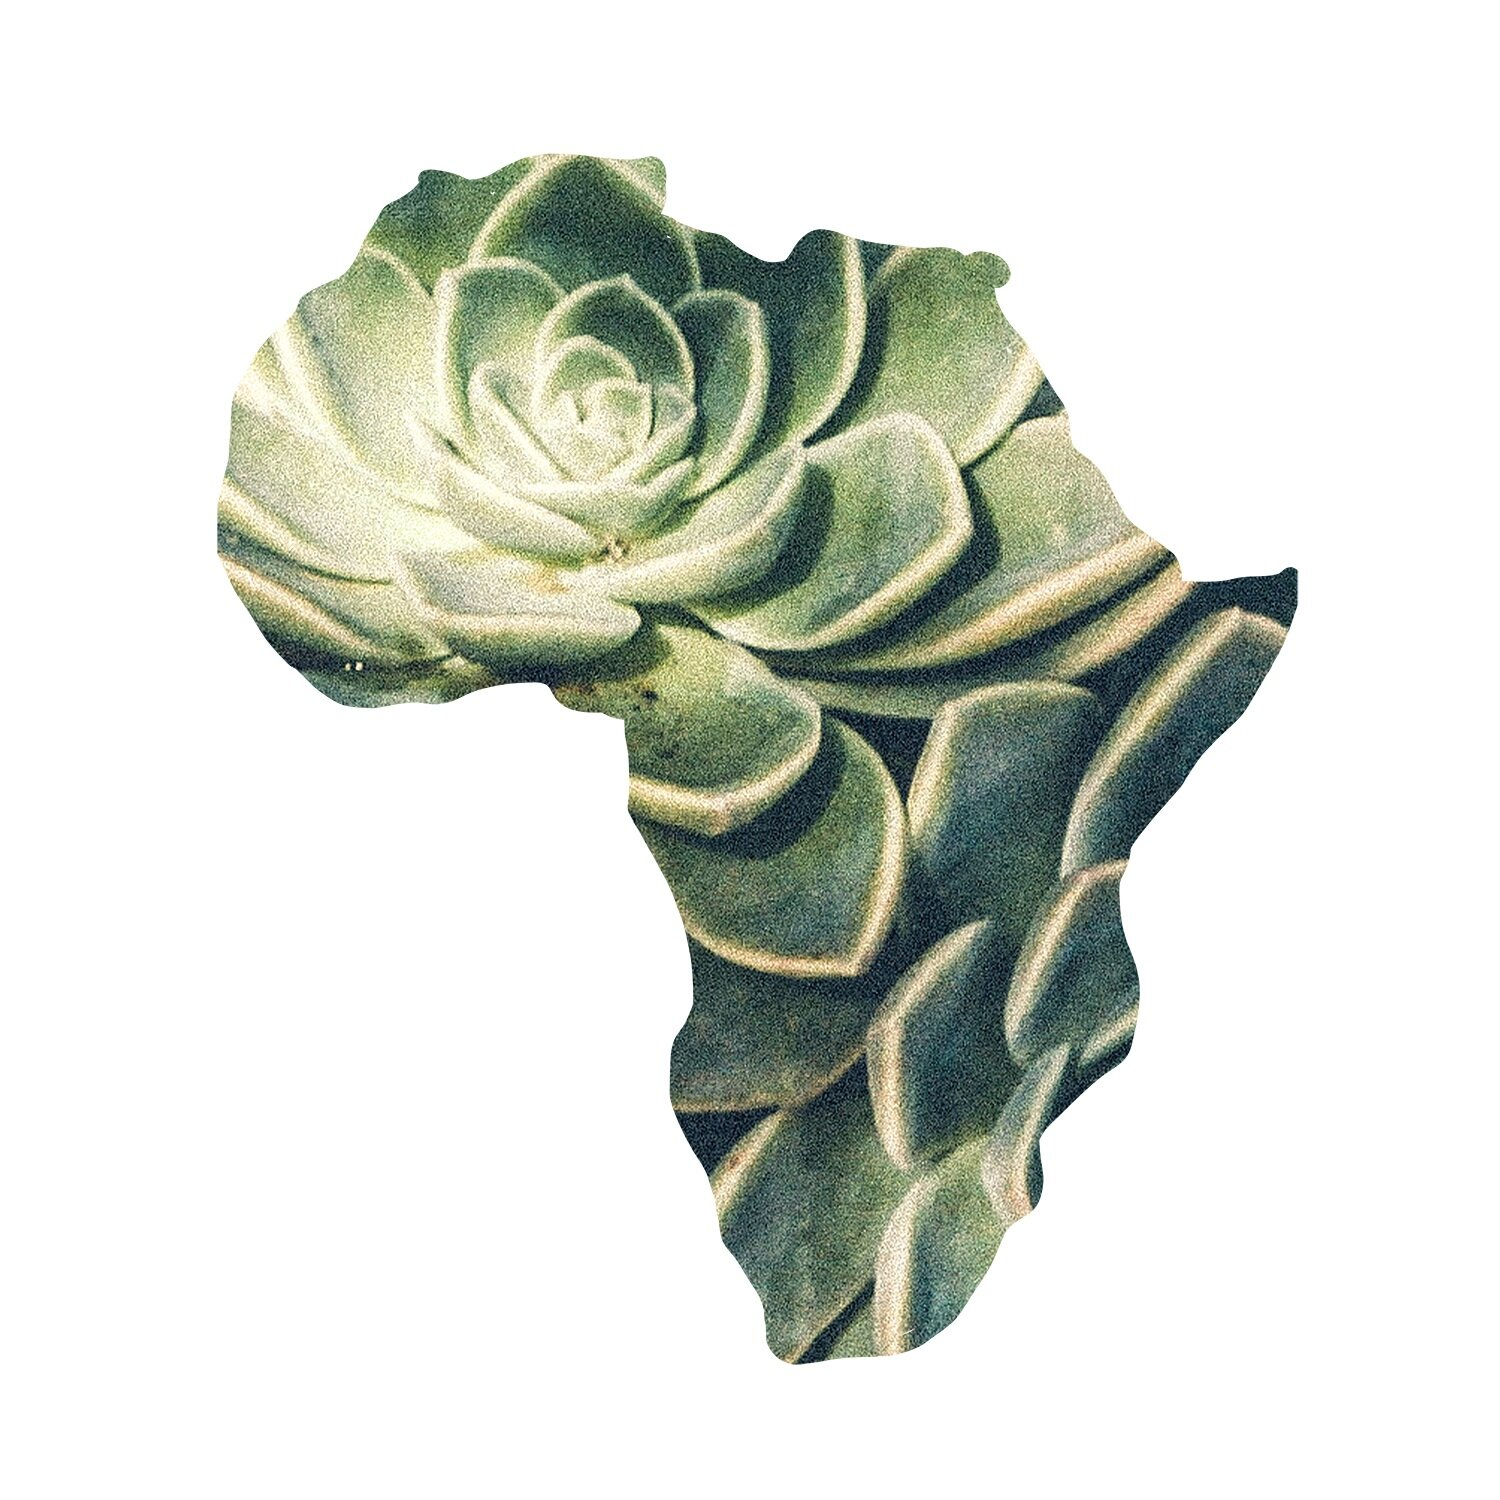 The African Rose